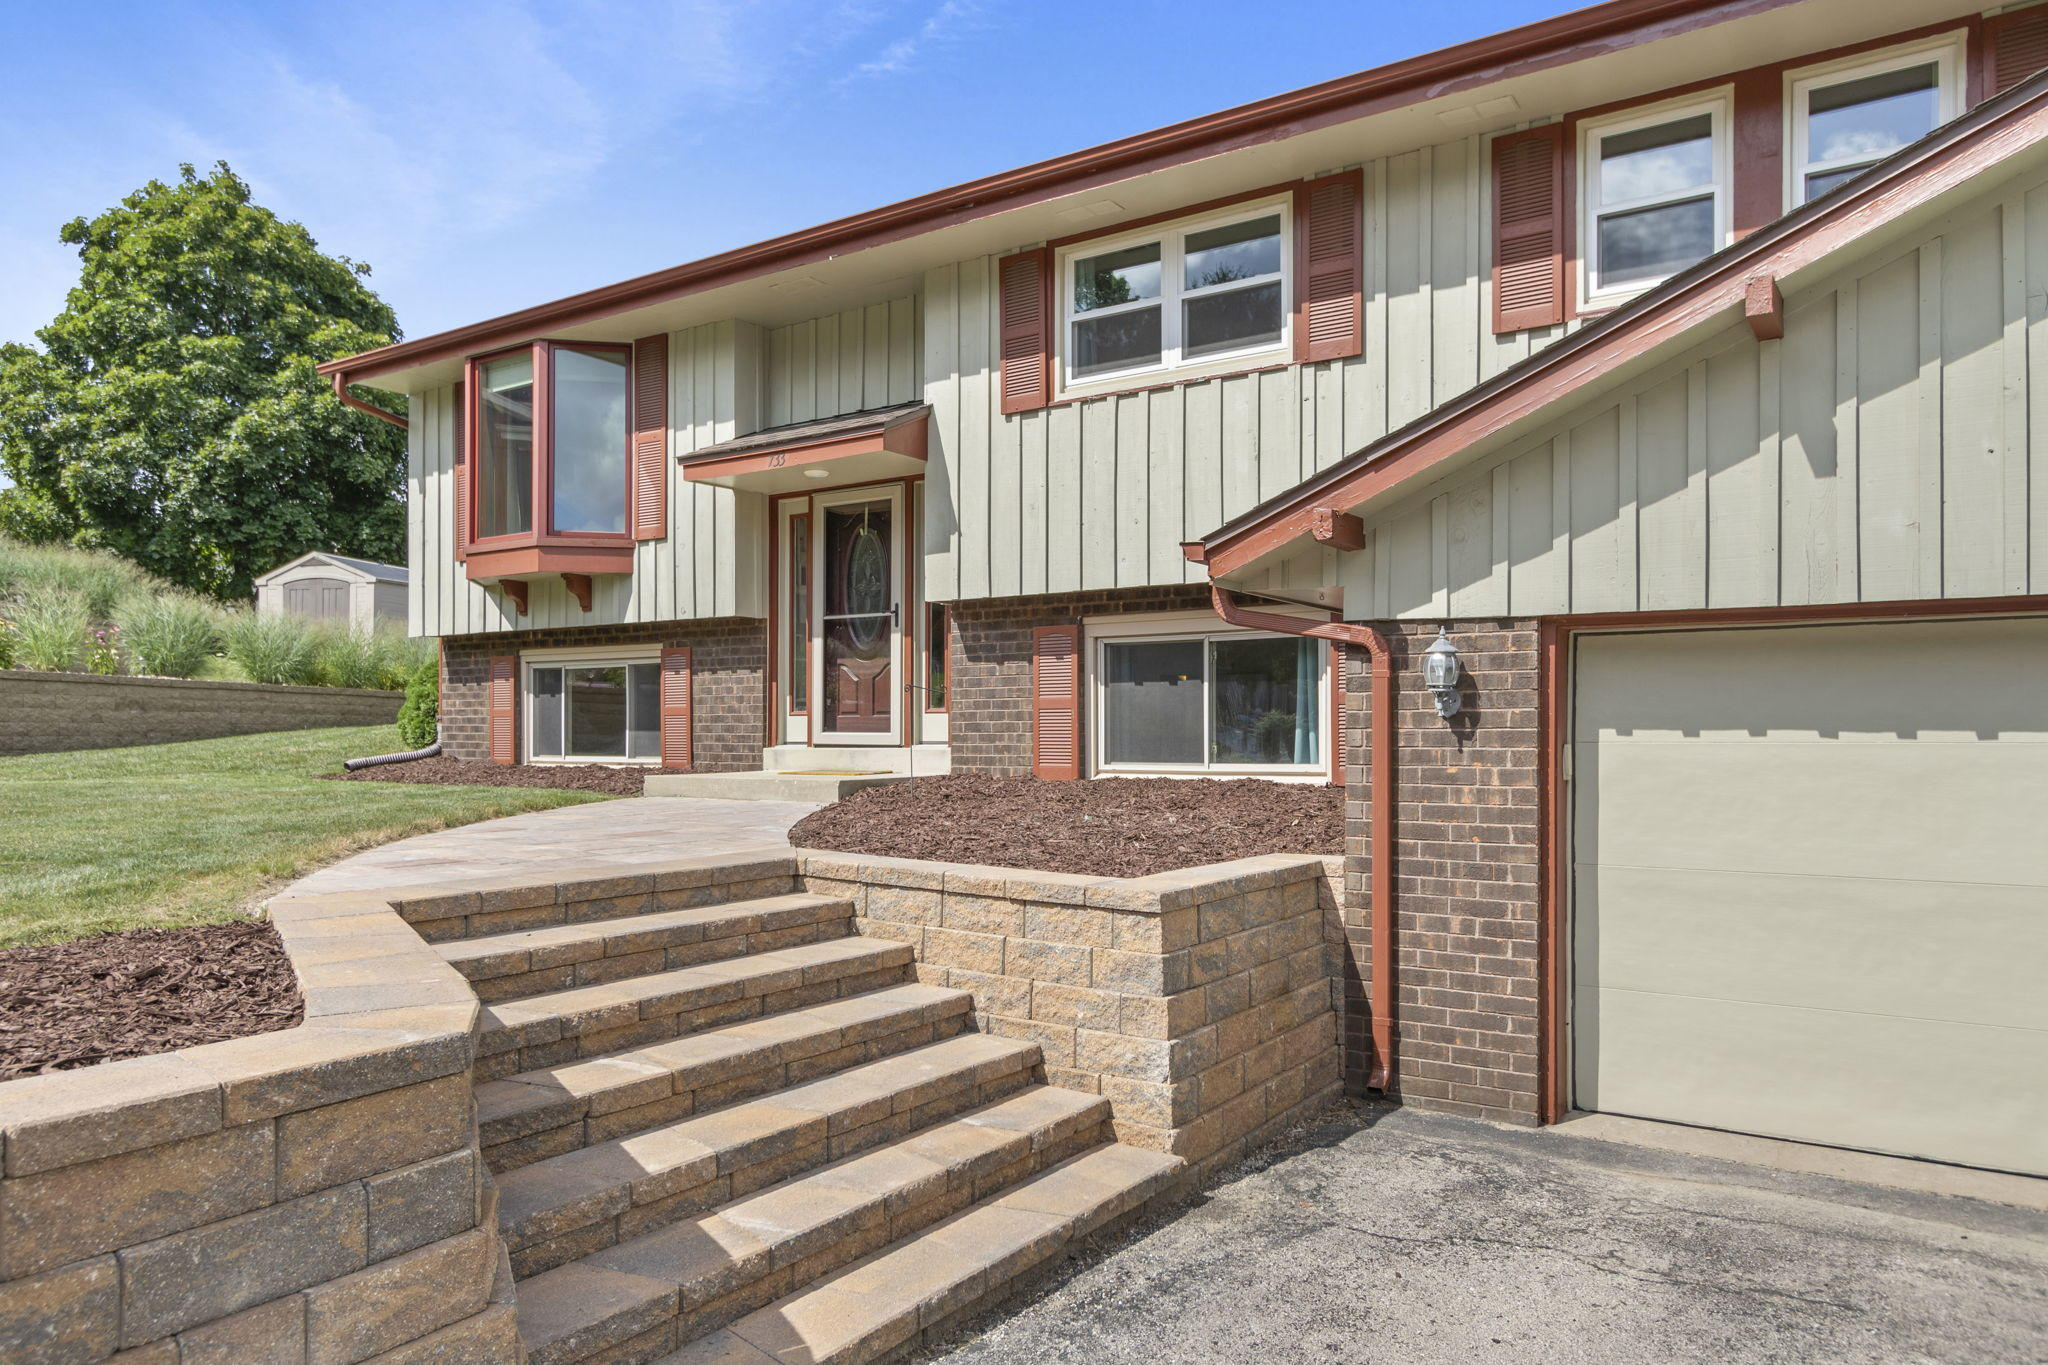 733 Cardiff Ct, Hartland, Wisconsin 53029, 4 Bedrooms Bedrooms, 9 Rooms Rooms,2 BathroomsBathrooms,Single-Family,For Sale,Cardiff Ct,1701799